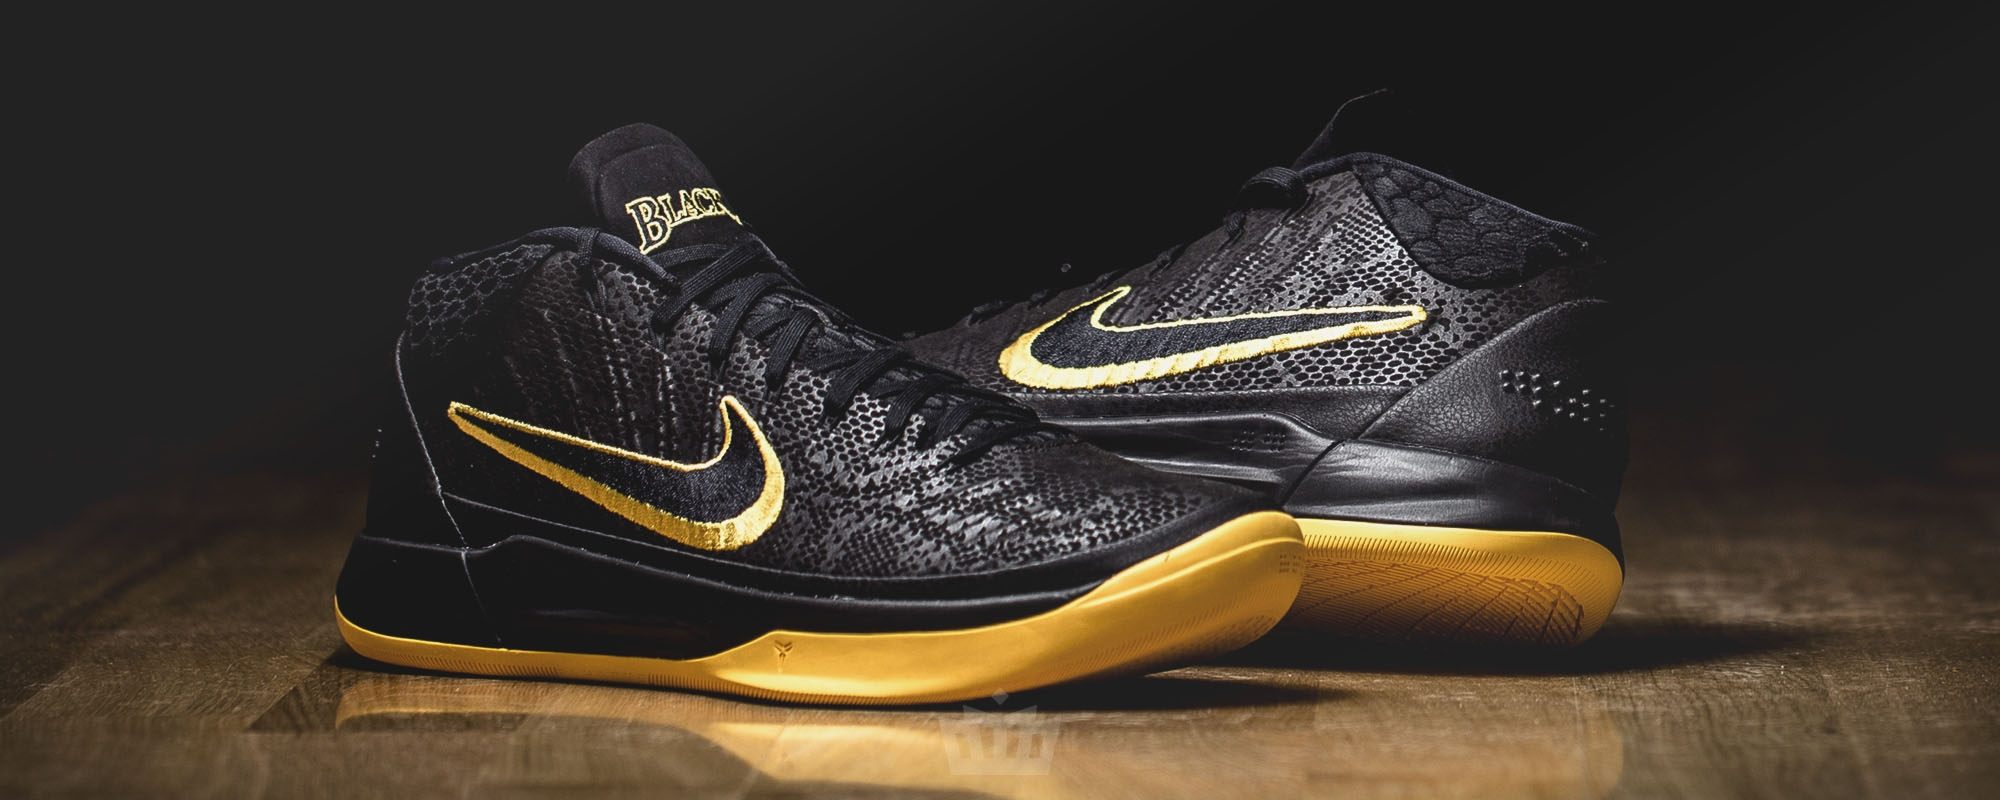 low priced b4339 7065e Kobe Ad Mid City Edition   Foot Fire